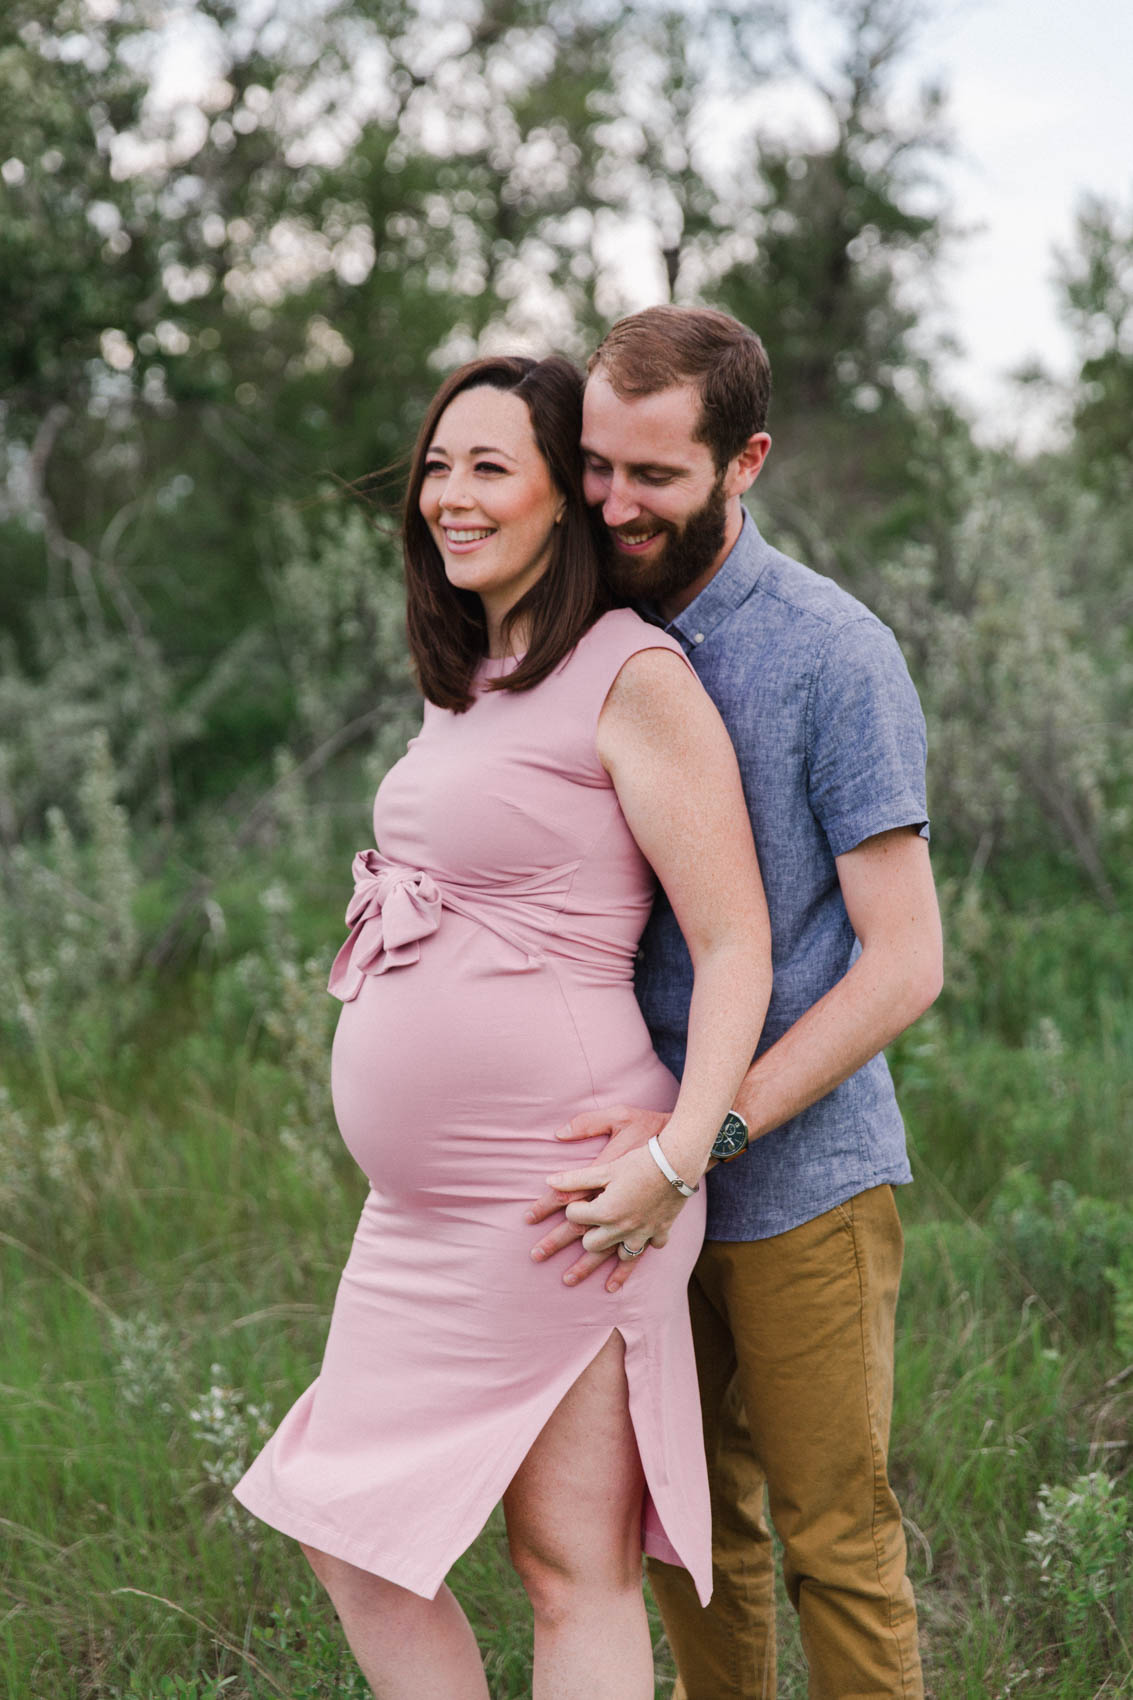 Calgary Maternity and Family in home Photographer Jennie Guenard Photography